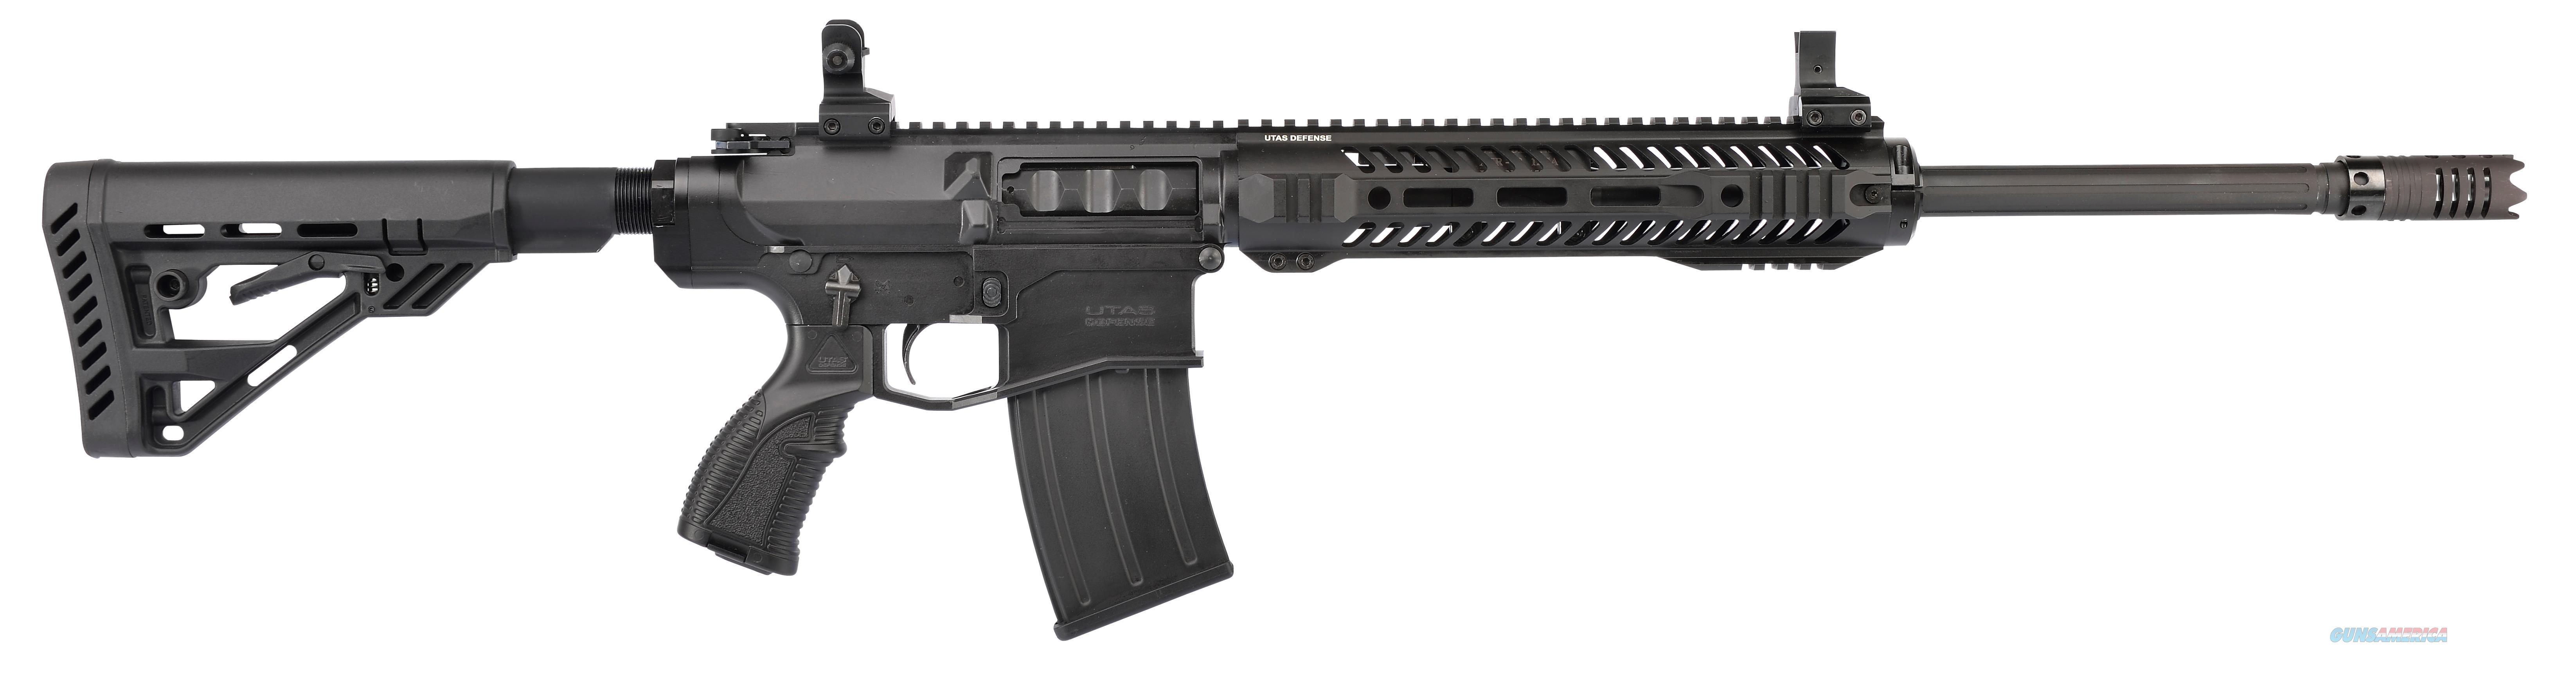 "Utas-Usa Xtr12bm1 Xtr-12 Semi-Automatic 12 Gauge 20.8"" 3"" 5+1 5-Position Synthetic W/Pistol Grip Black Black Cerakote XTR12BM1  Guns > Shotguns > TU Misc Shotguns"